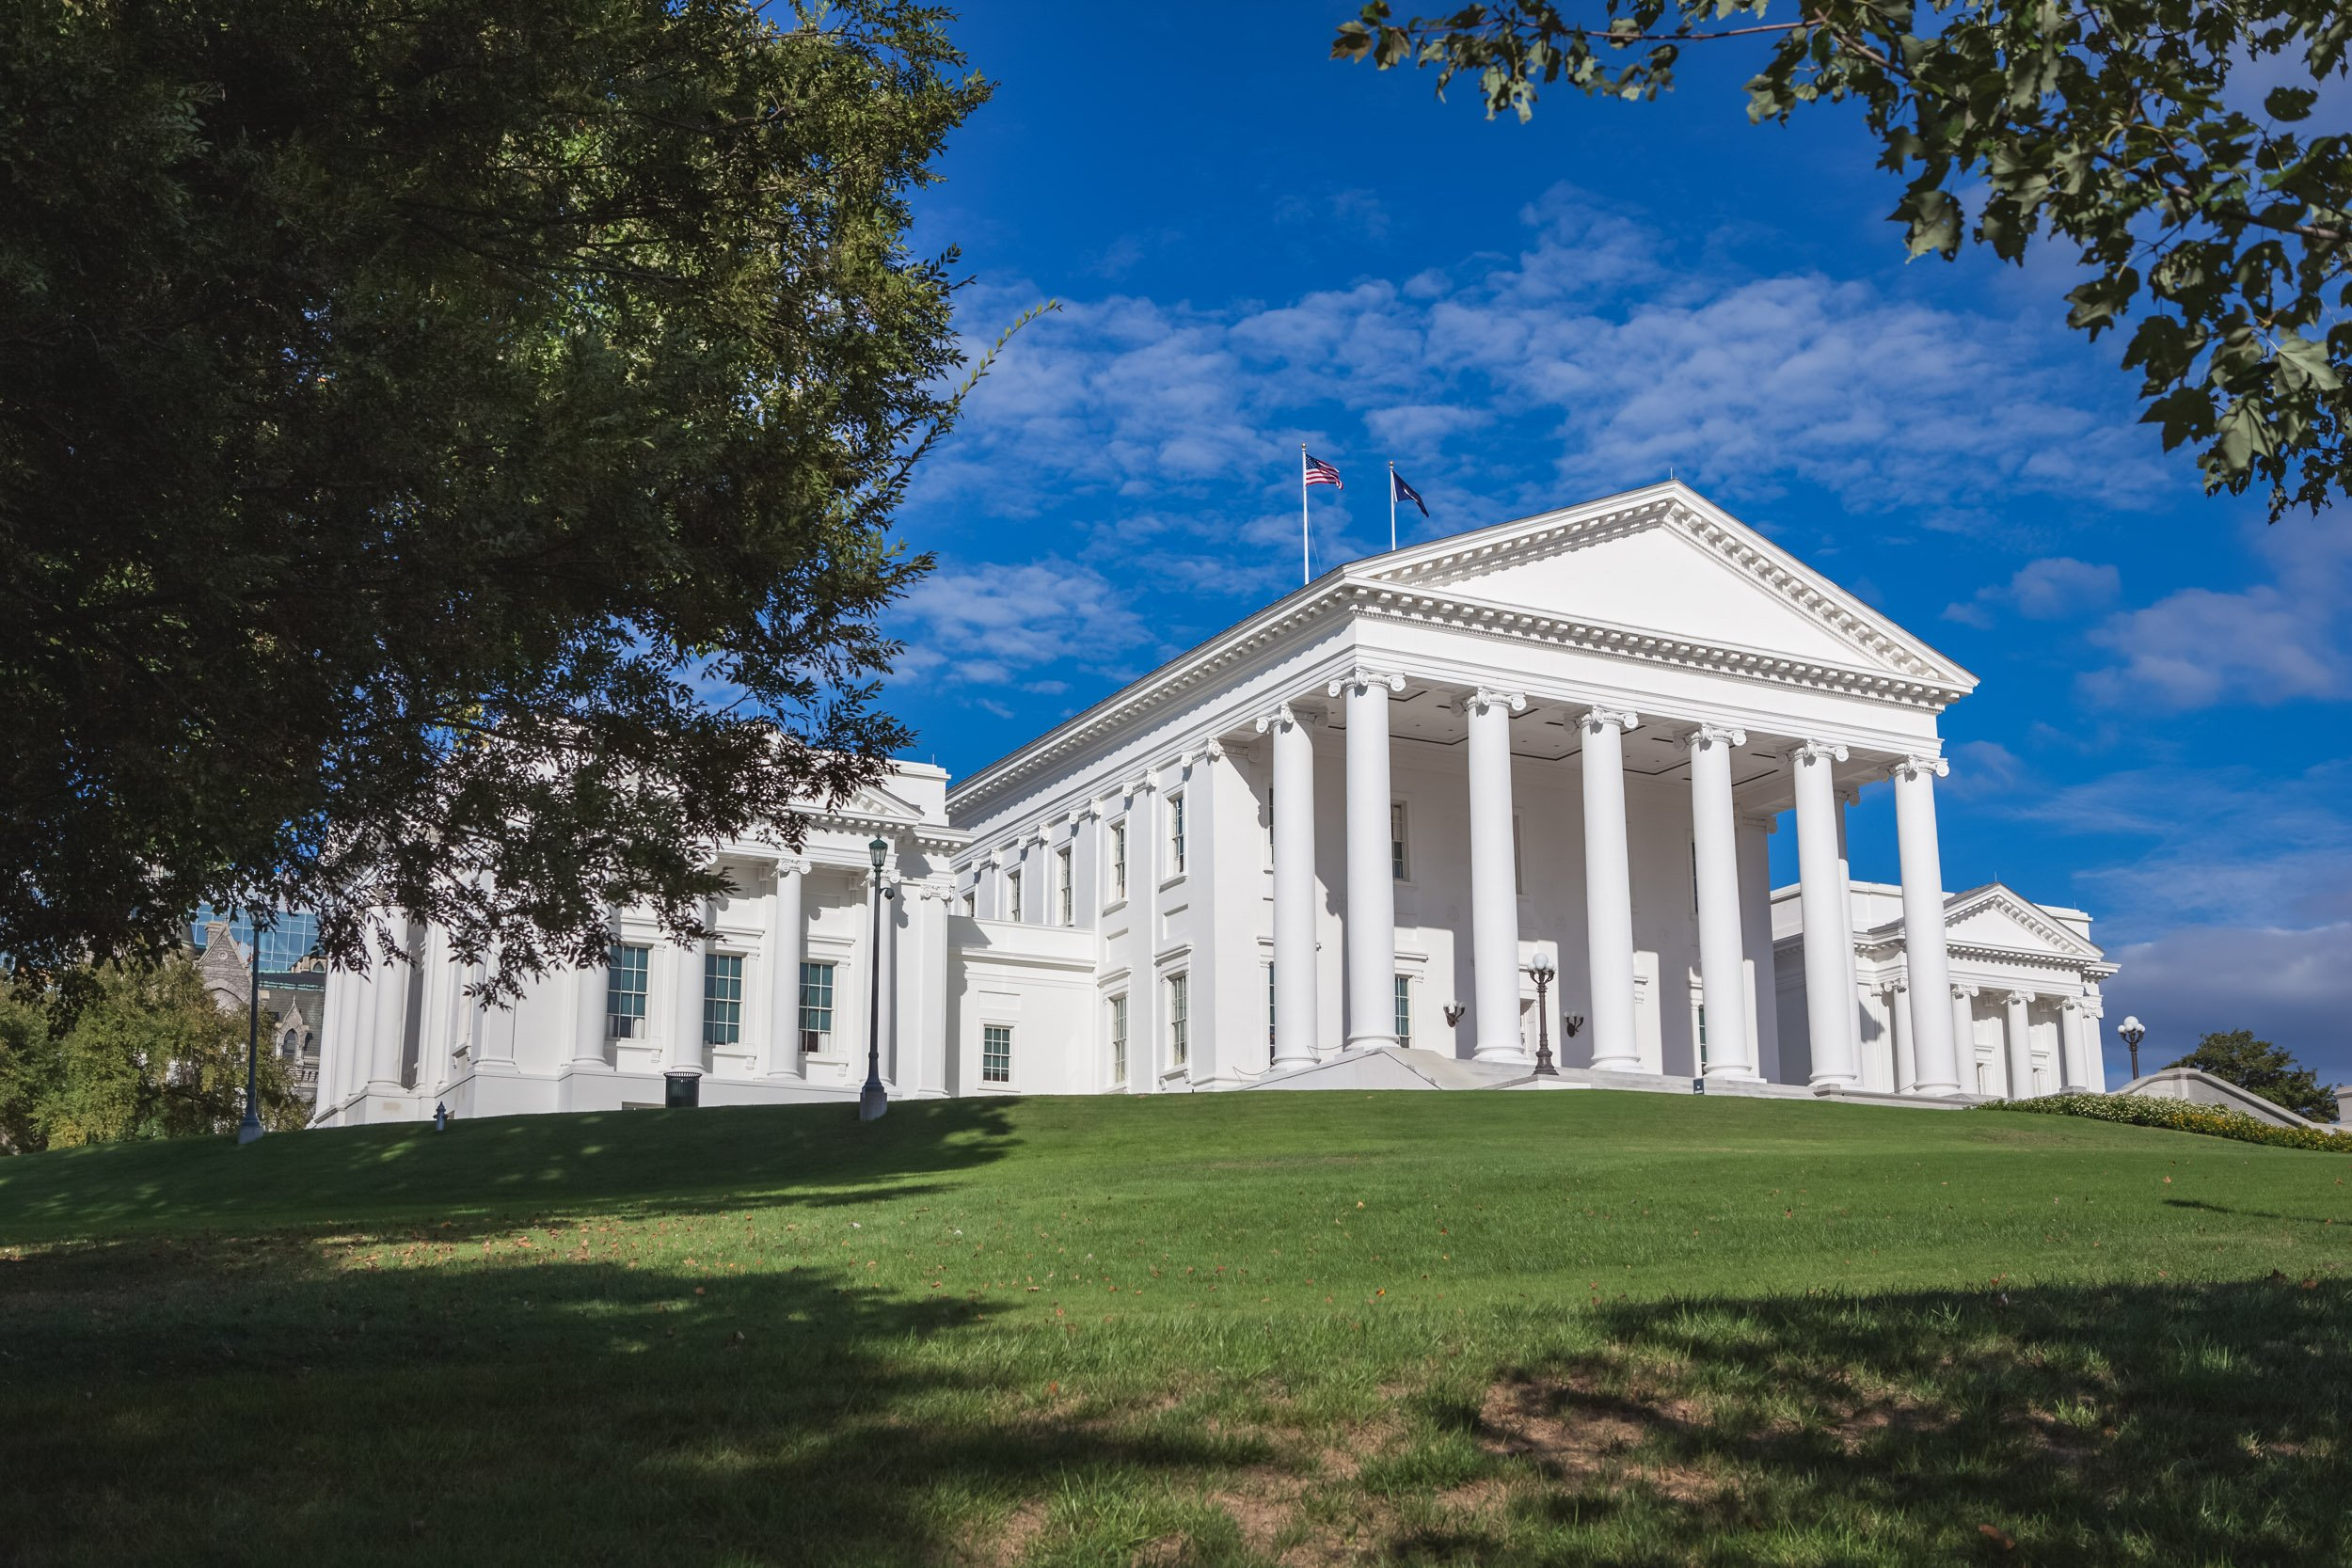 Virginia State Capitol Building in Richmond, VA